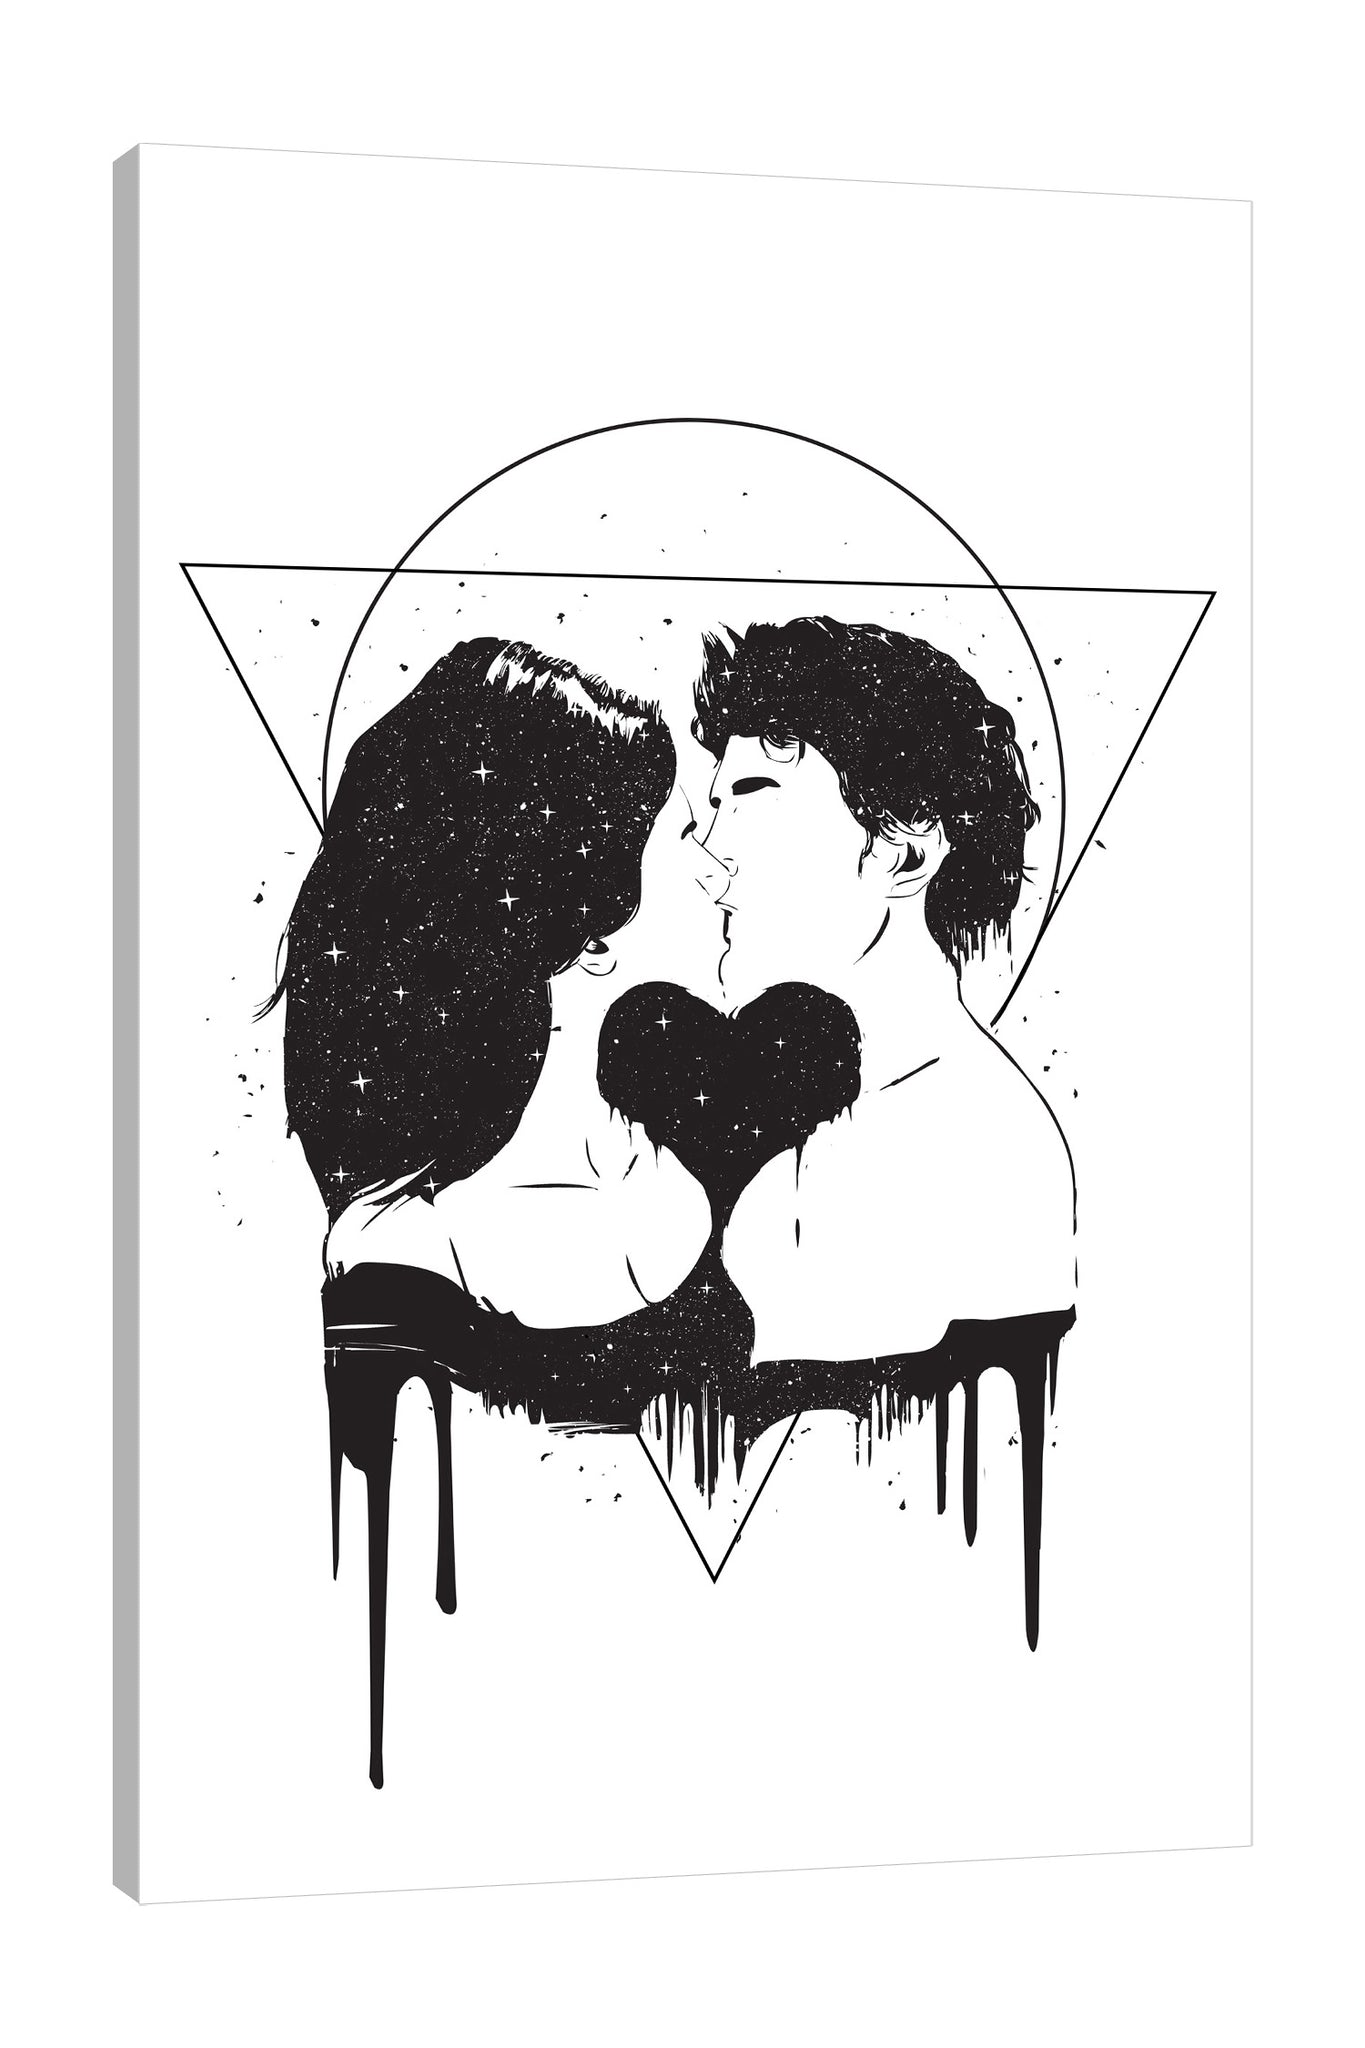 Balazs-Solti,Modern & Contemporary,People,Geometric,people,man,woman,couple,lovers,kissing,kiss,cosmic,shapes,shape,triangle,triangles,circle,circles,black and white,splatters,splatter,stars,sparkling,sparkle,paint drips,paint drip,drips,drip,Mist Gray,Teal Blue,Red,White